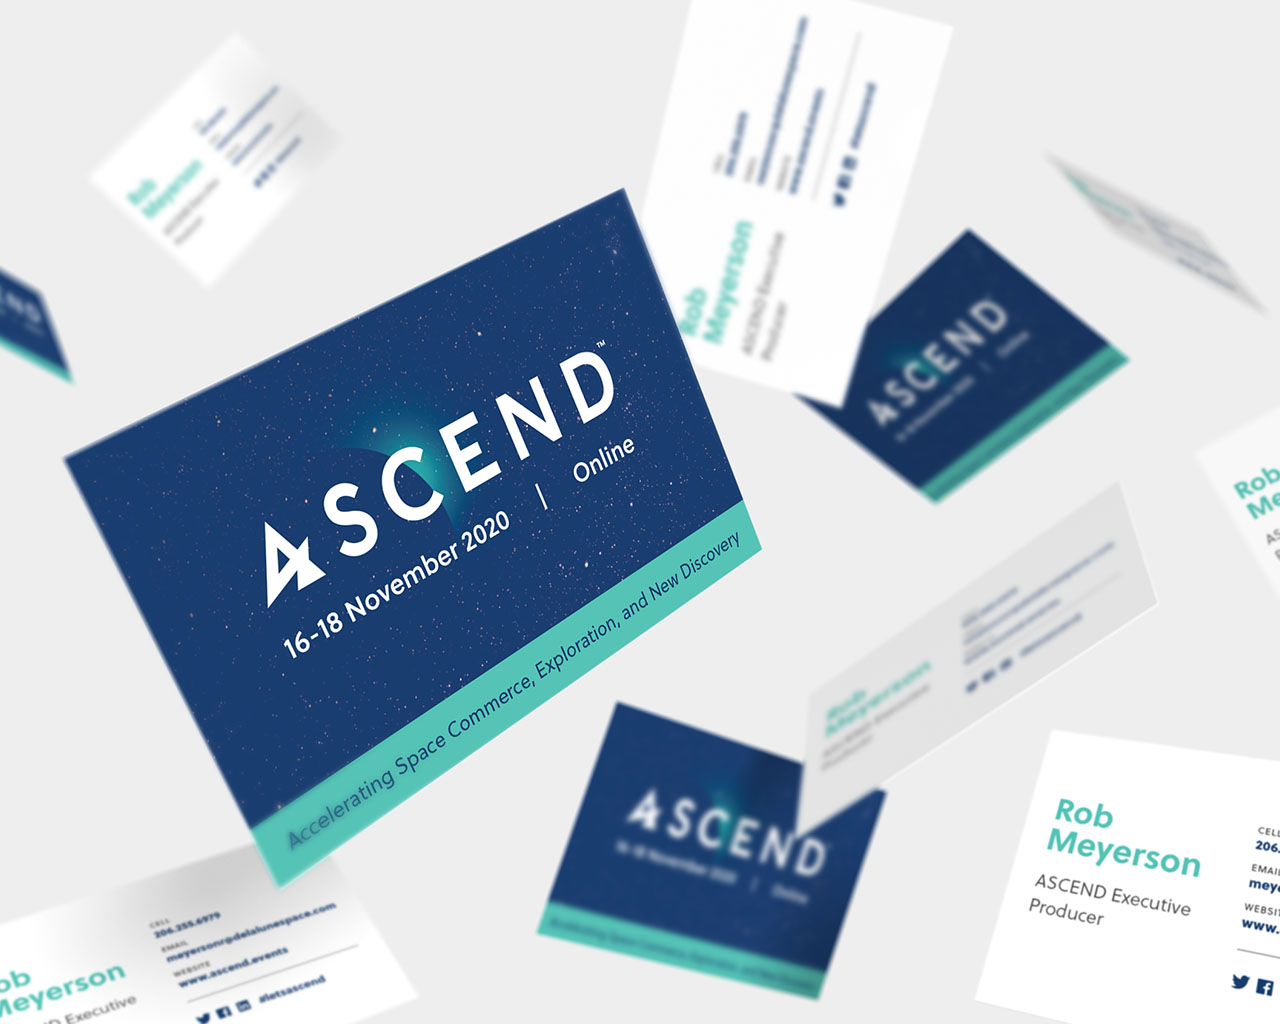 Several floating business cards for the virtual event ASCEND